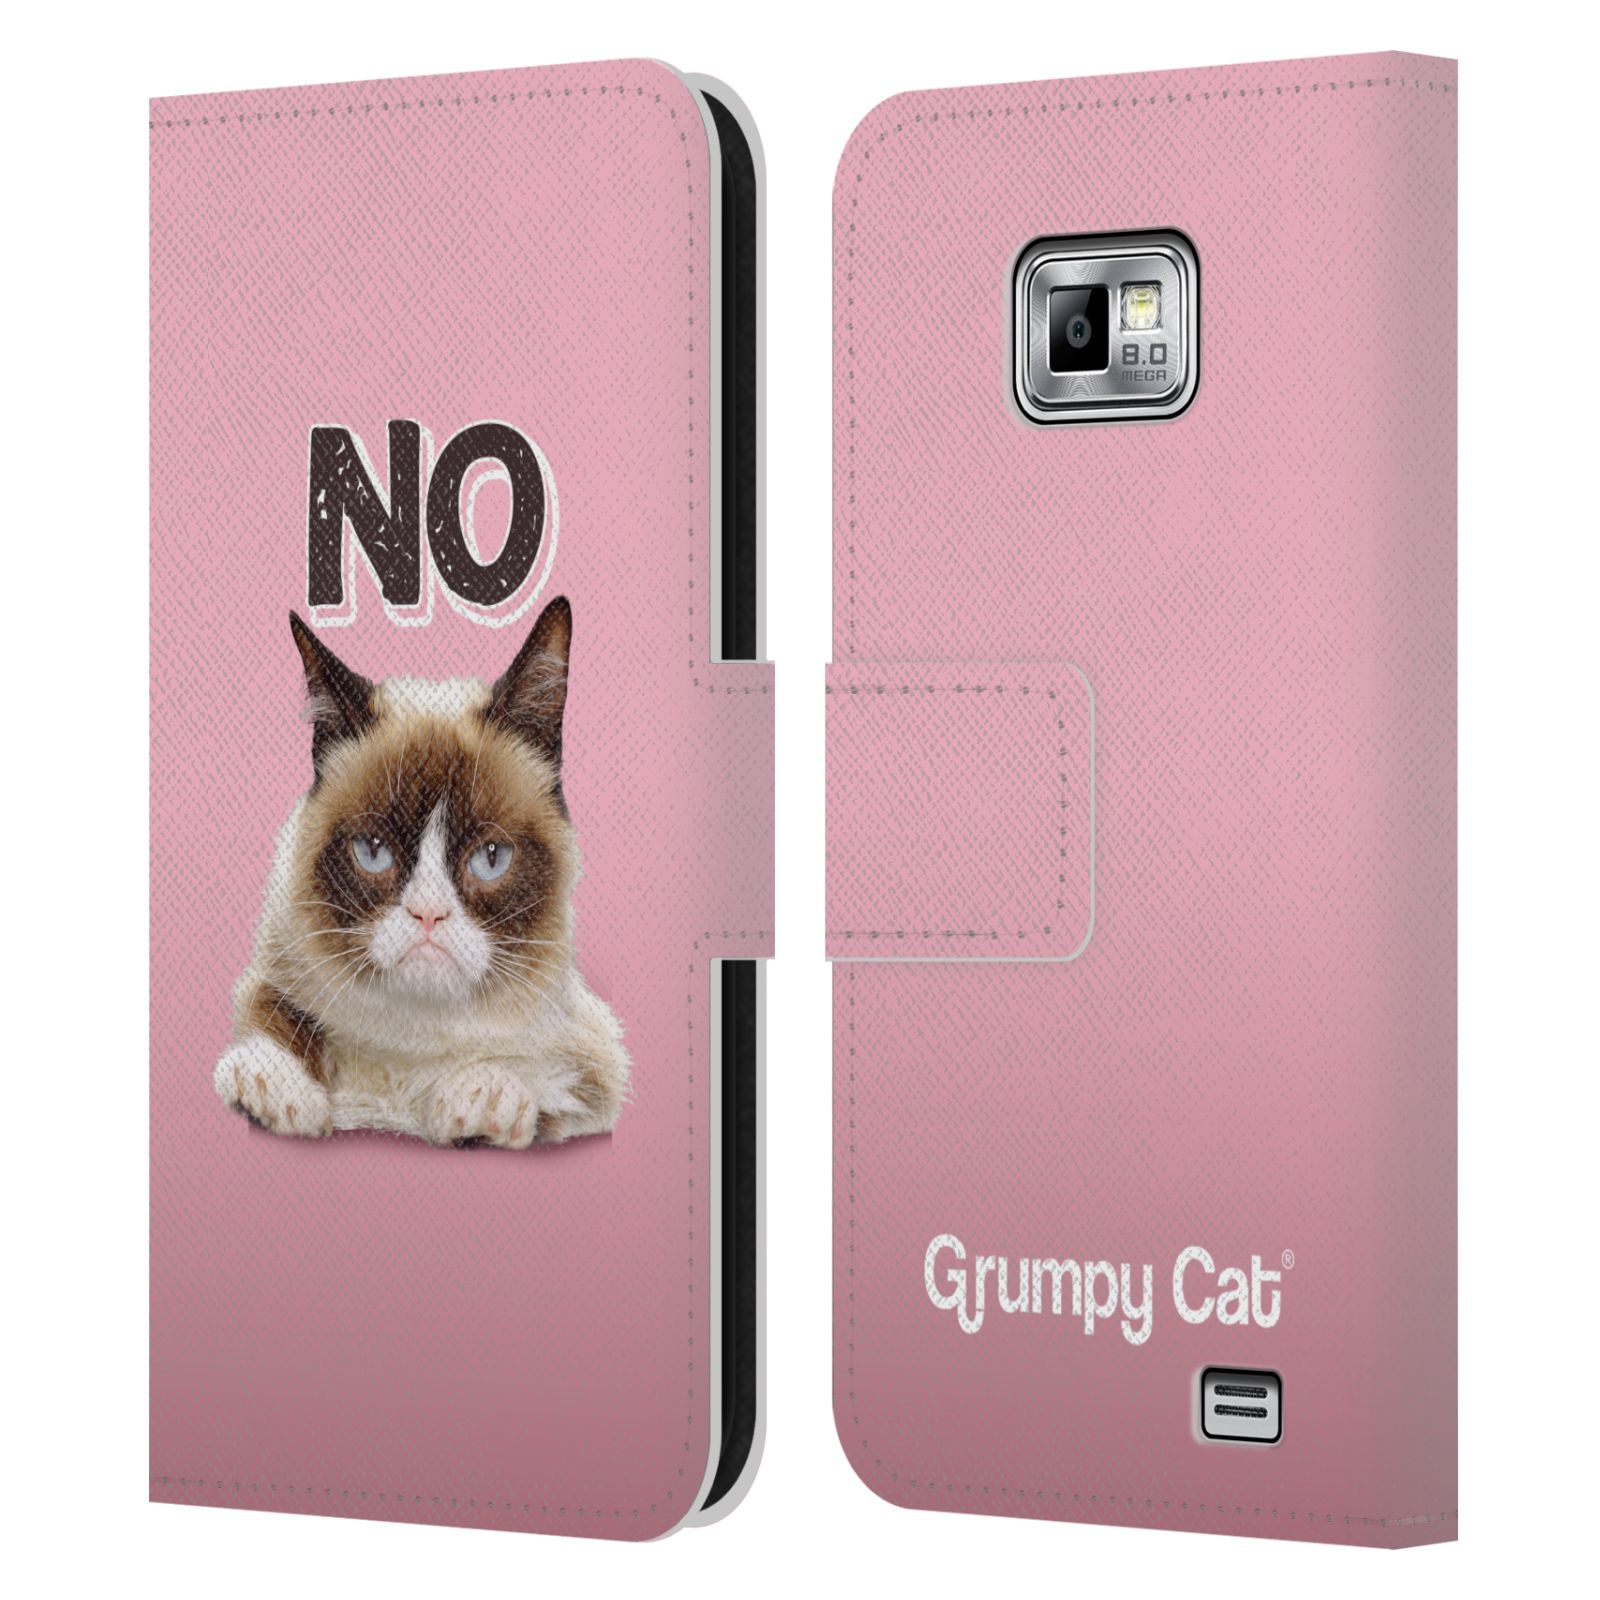 OFFICIAL GRUMPY CAT QUOTES LEATHER BOOK WALLET CASE COVER ...